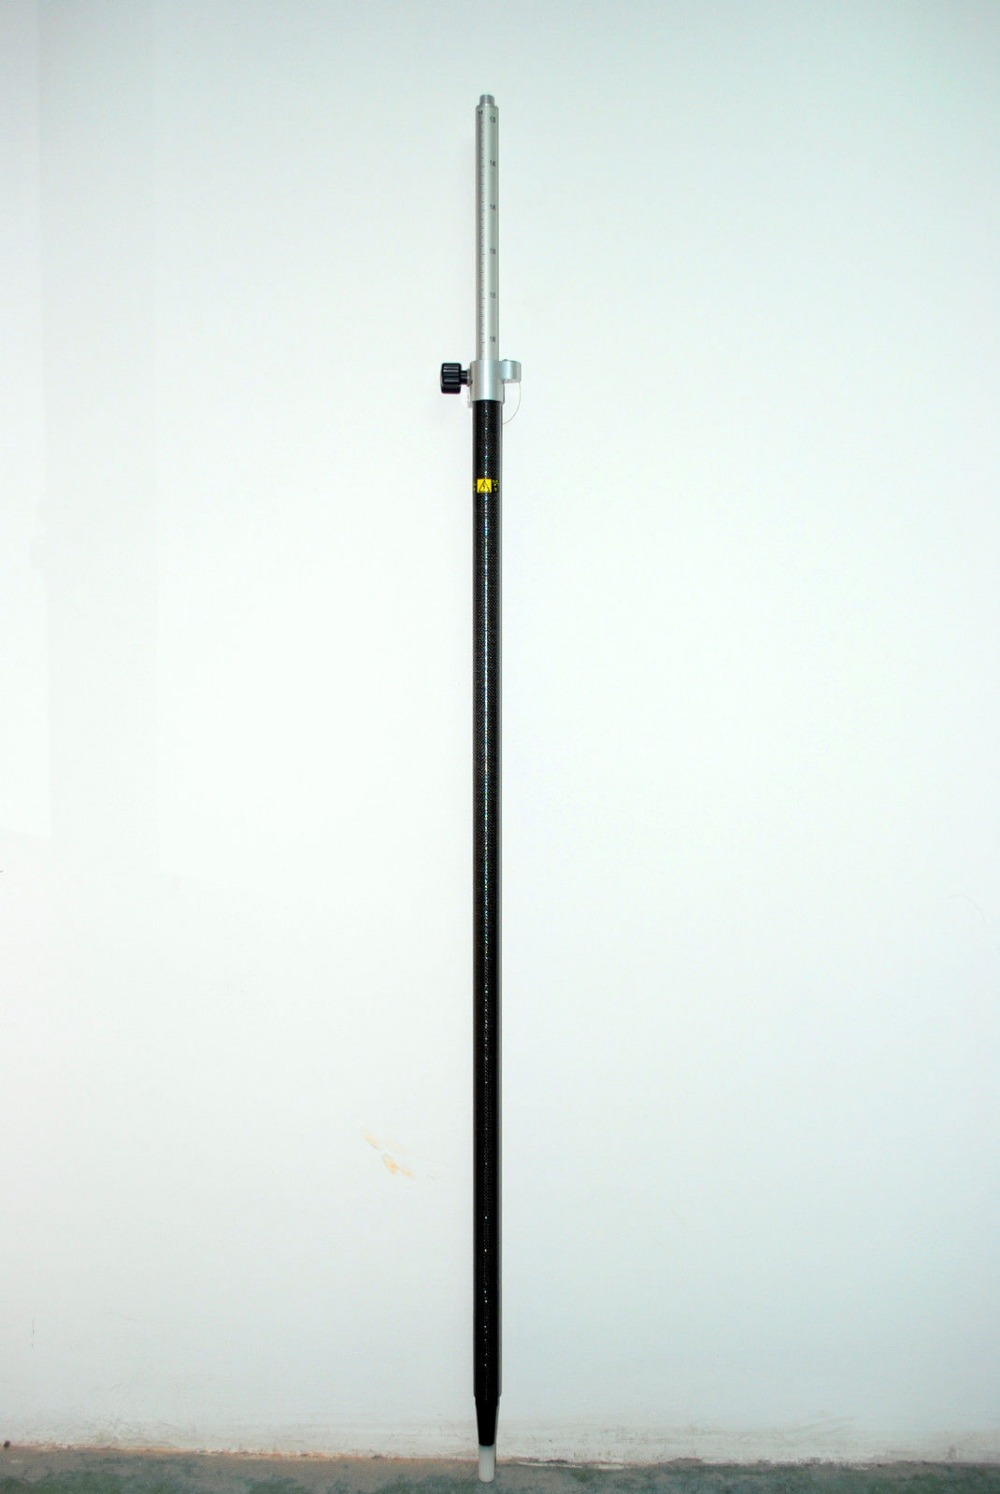 TELESCOPIC CARBON FIBER PRISM GPS POLE,TOTAL STATION,SURVEYING,TRIMBLE,TOPCON,NIKON,SOKKIA,SOUTH цена